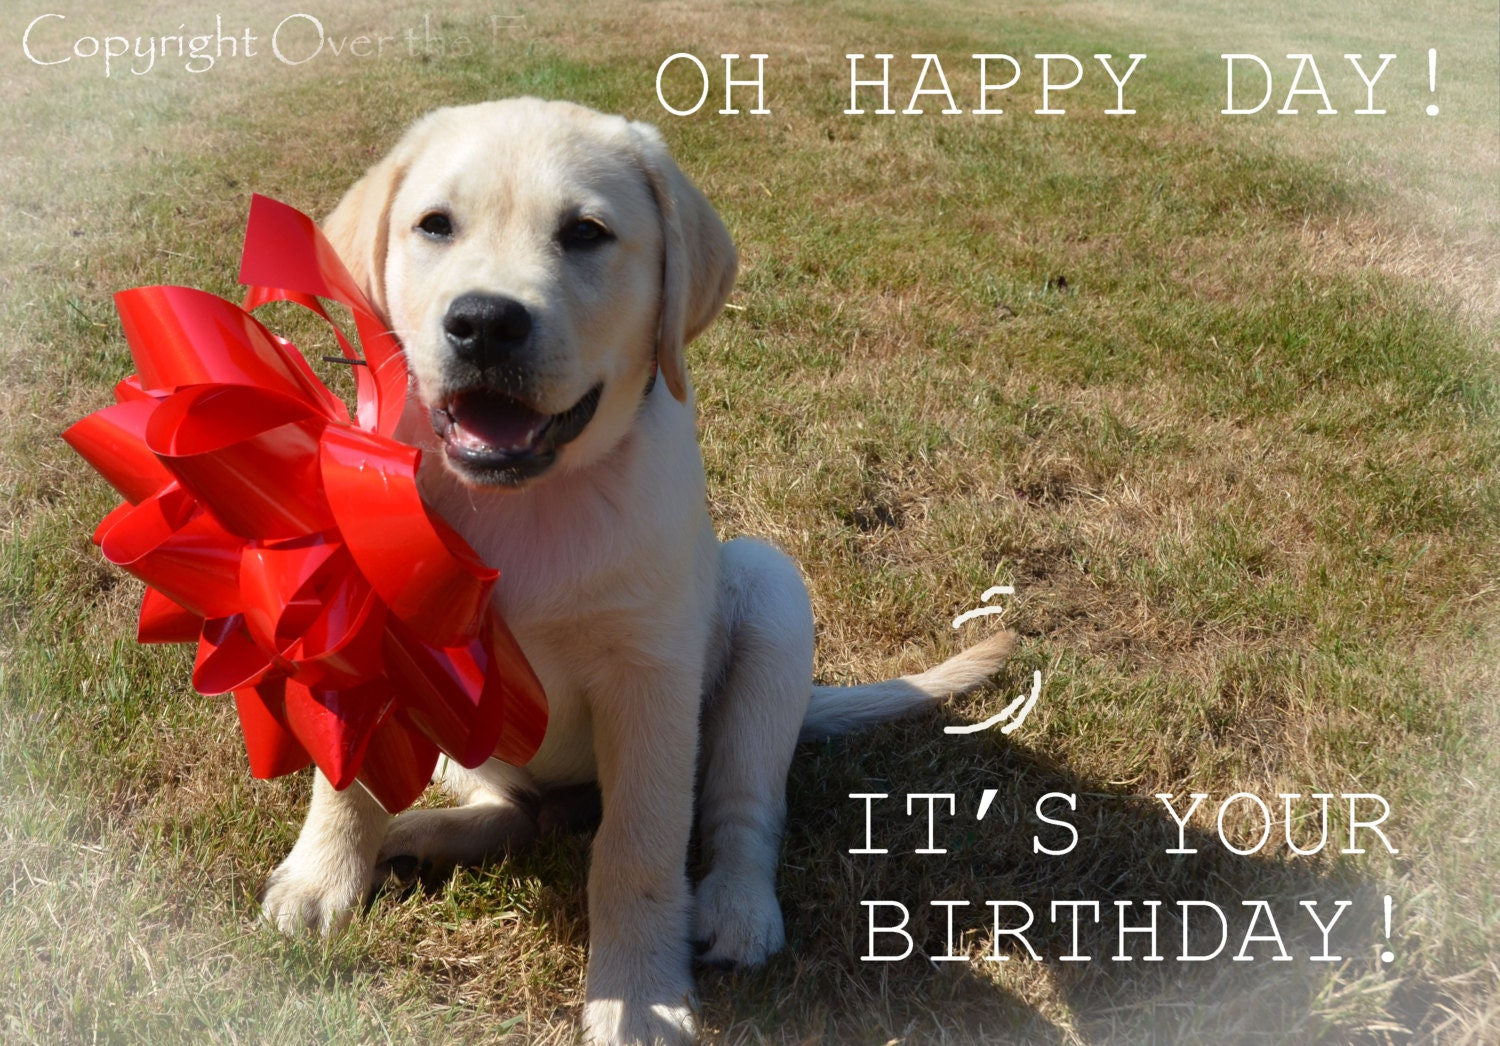 Dog birthday card yellow labrador puppy with happy birthday zoom kristyandbryce Choice Image